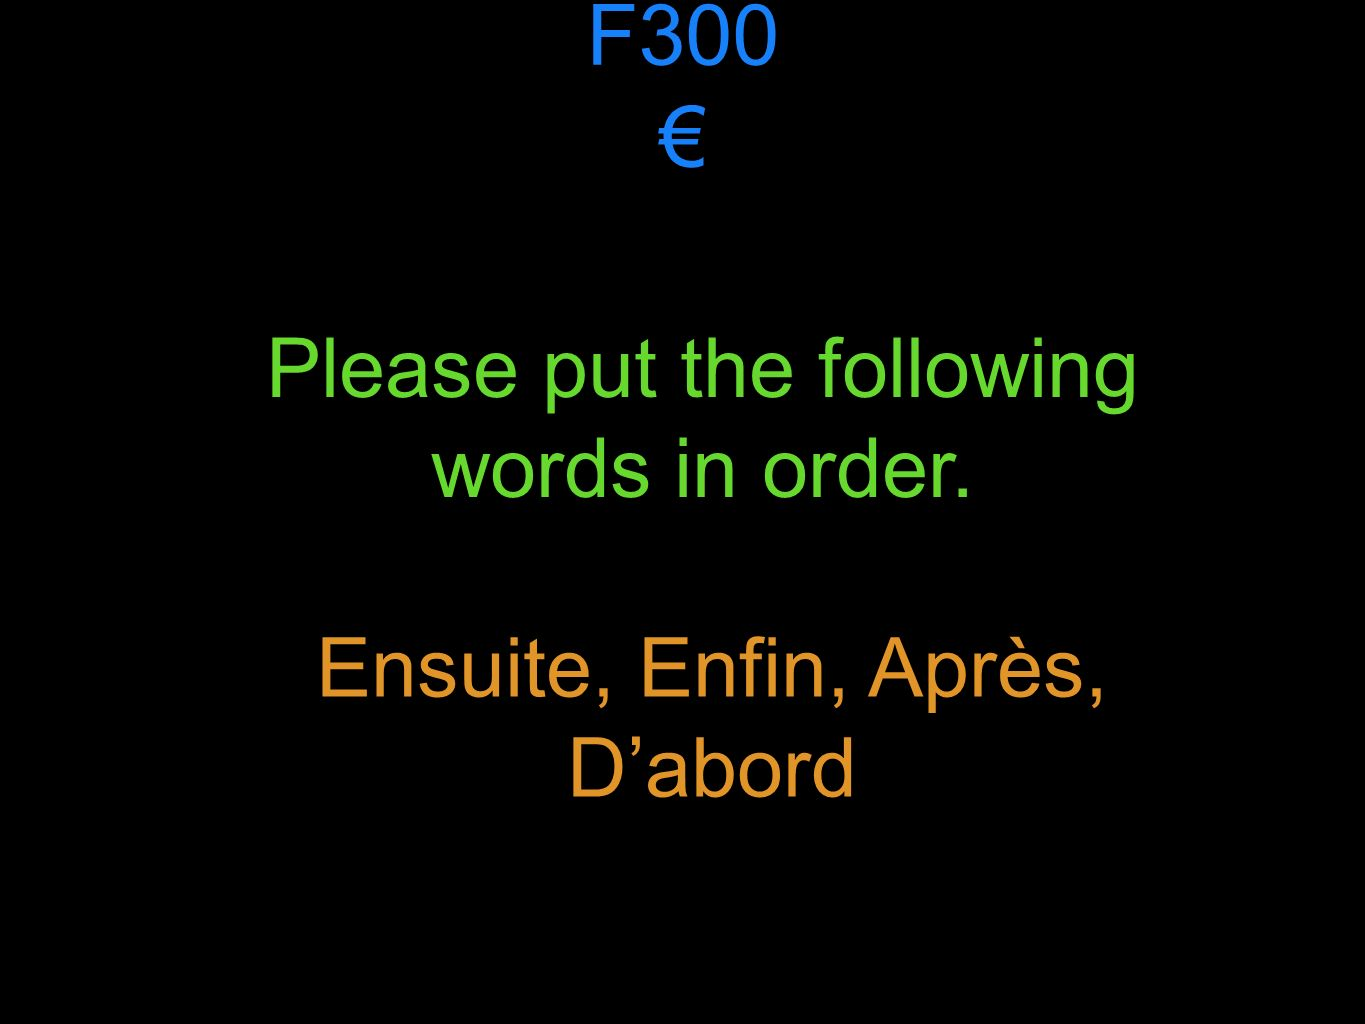 F300 Please put the following words in order. Ensuite, Enfin, Après, Dabord